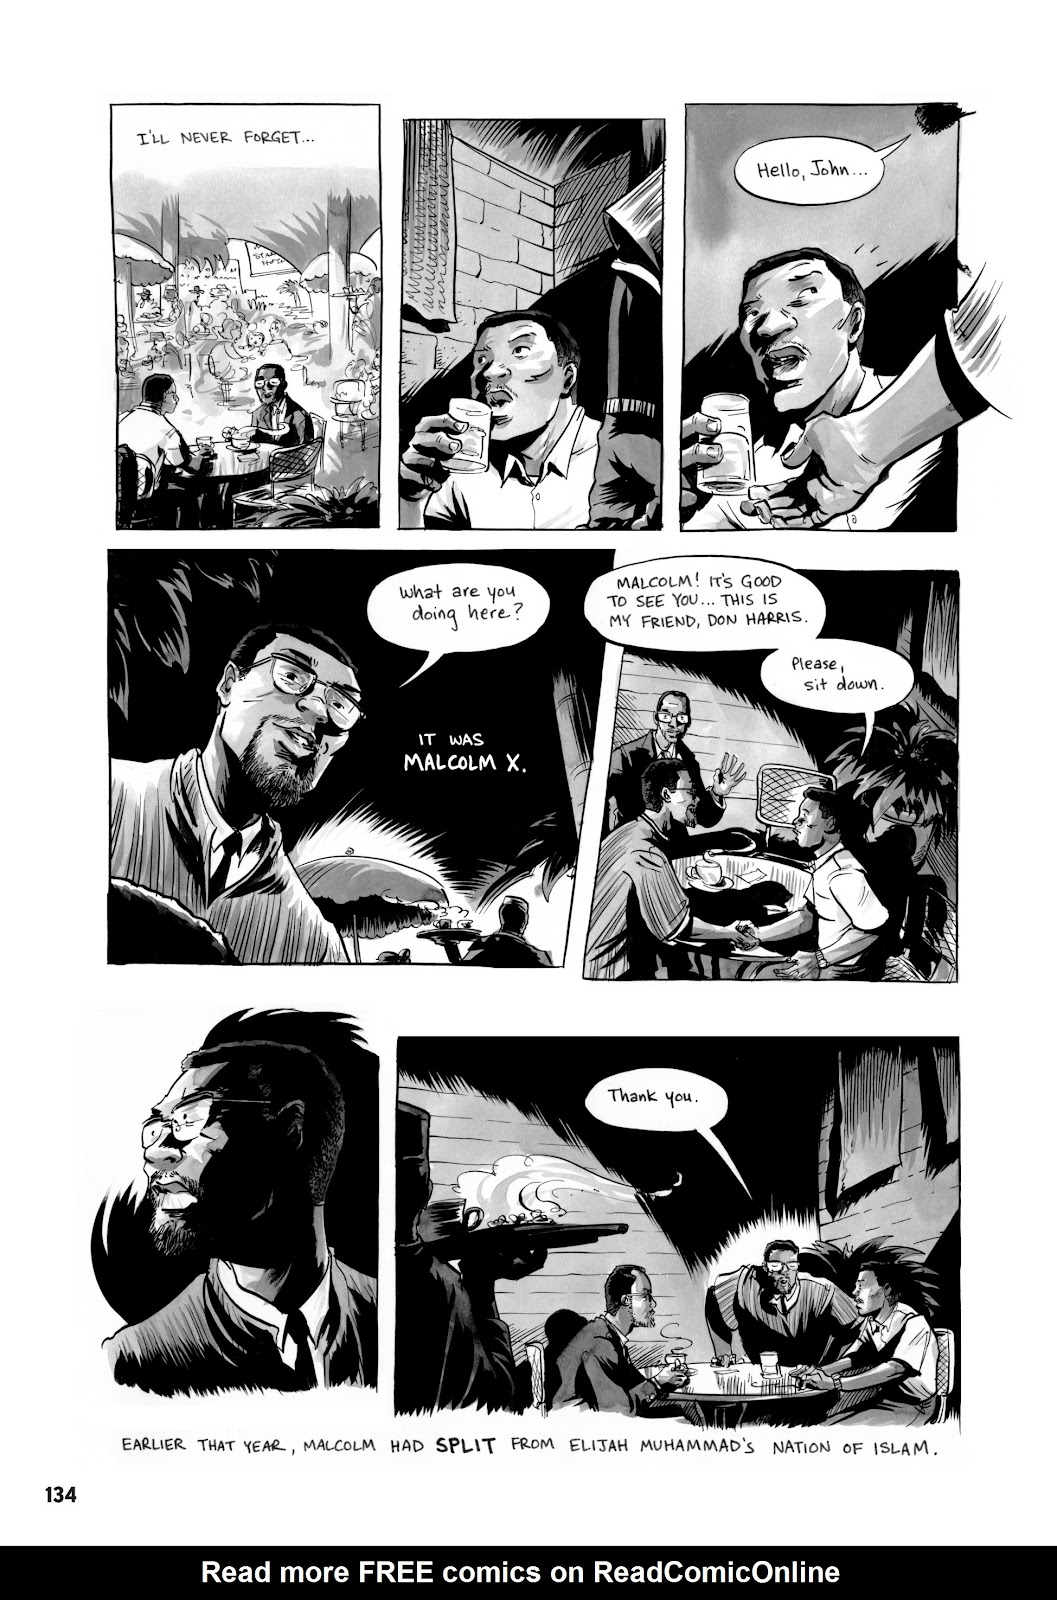 March 3 Page 129